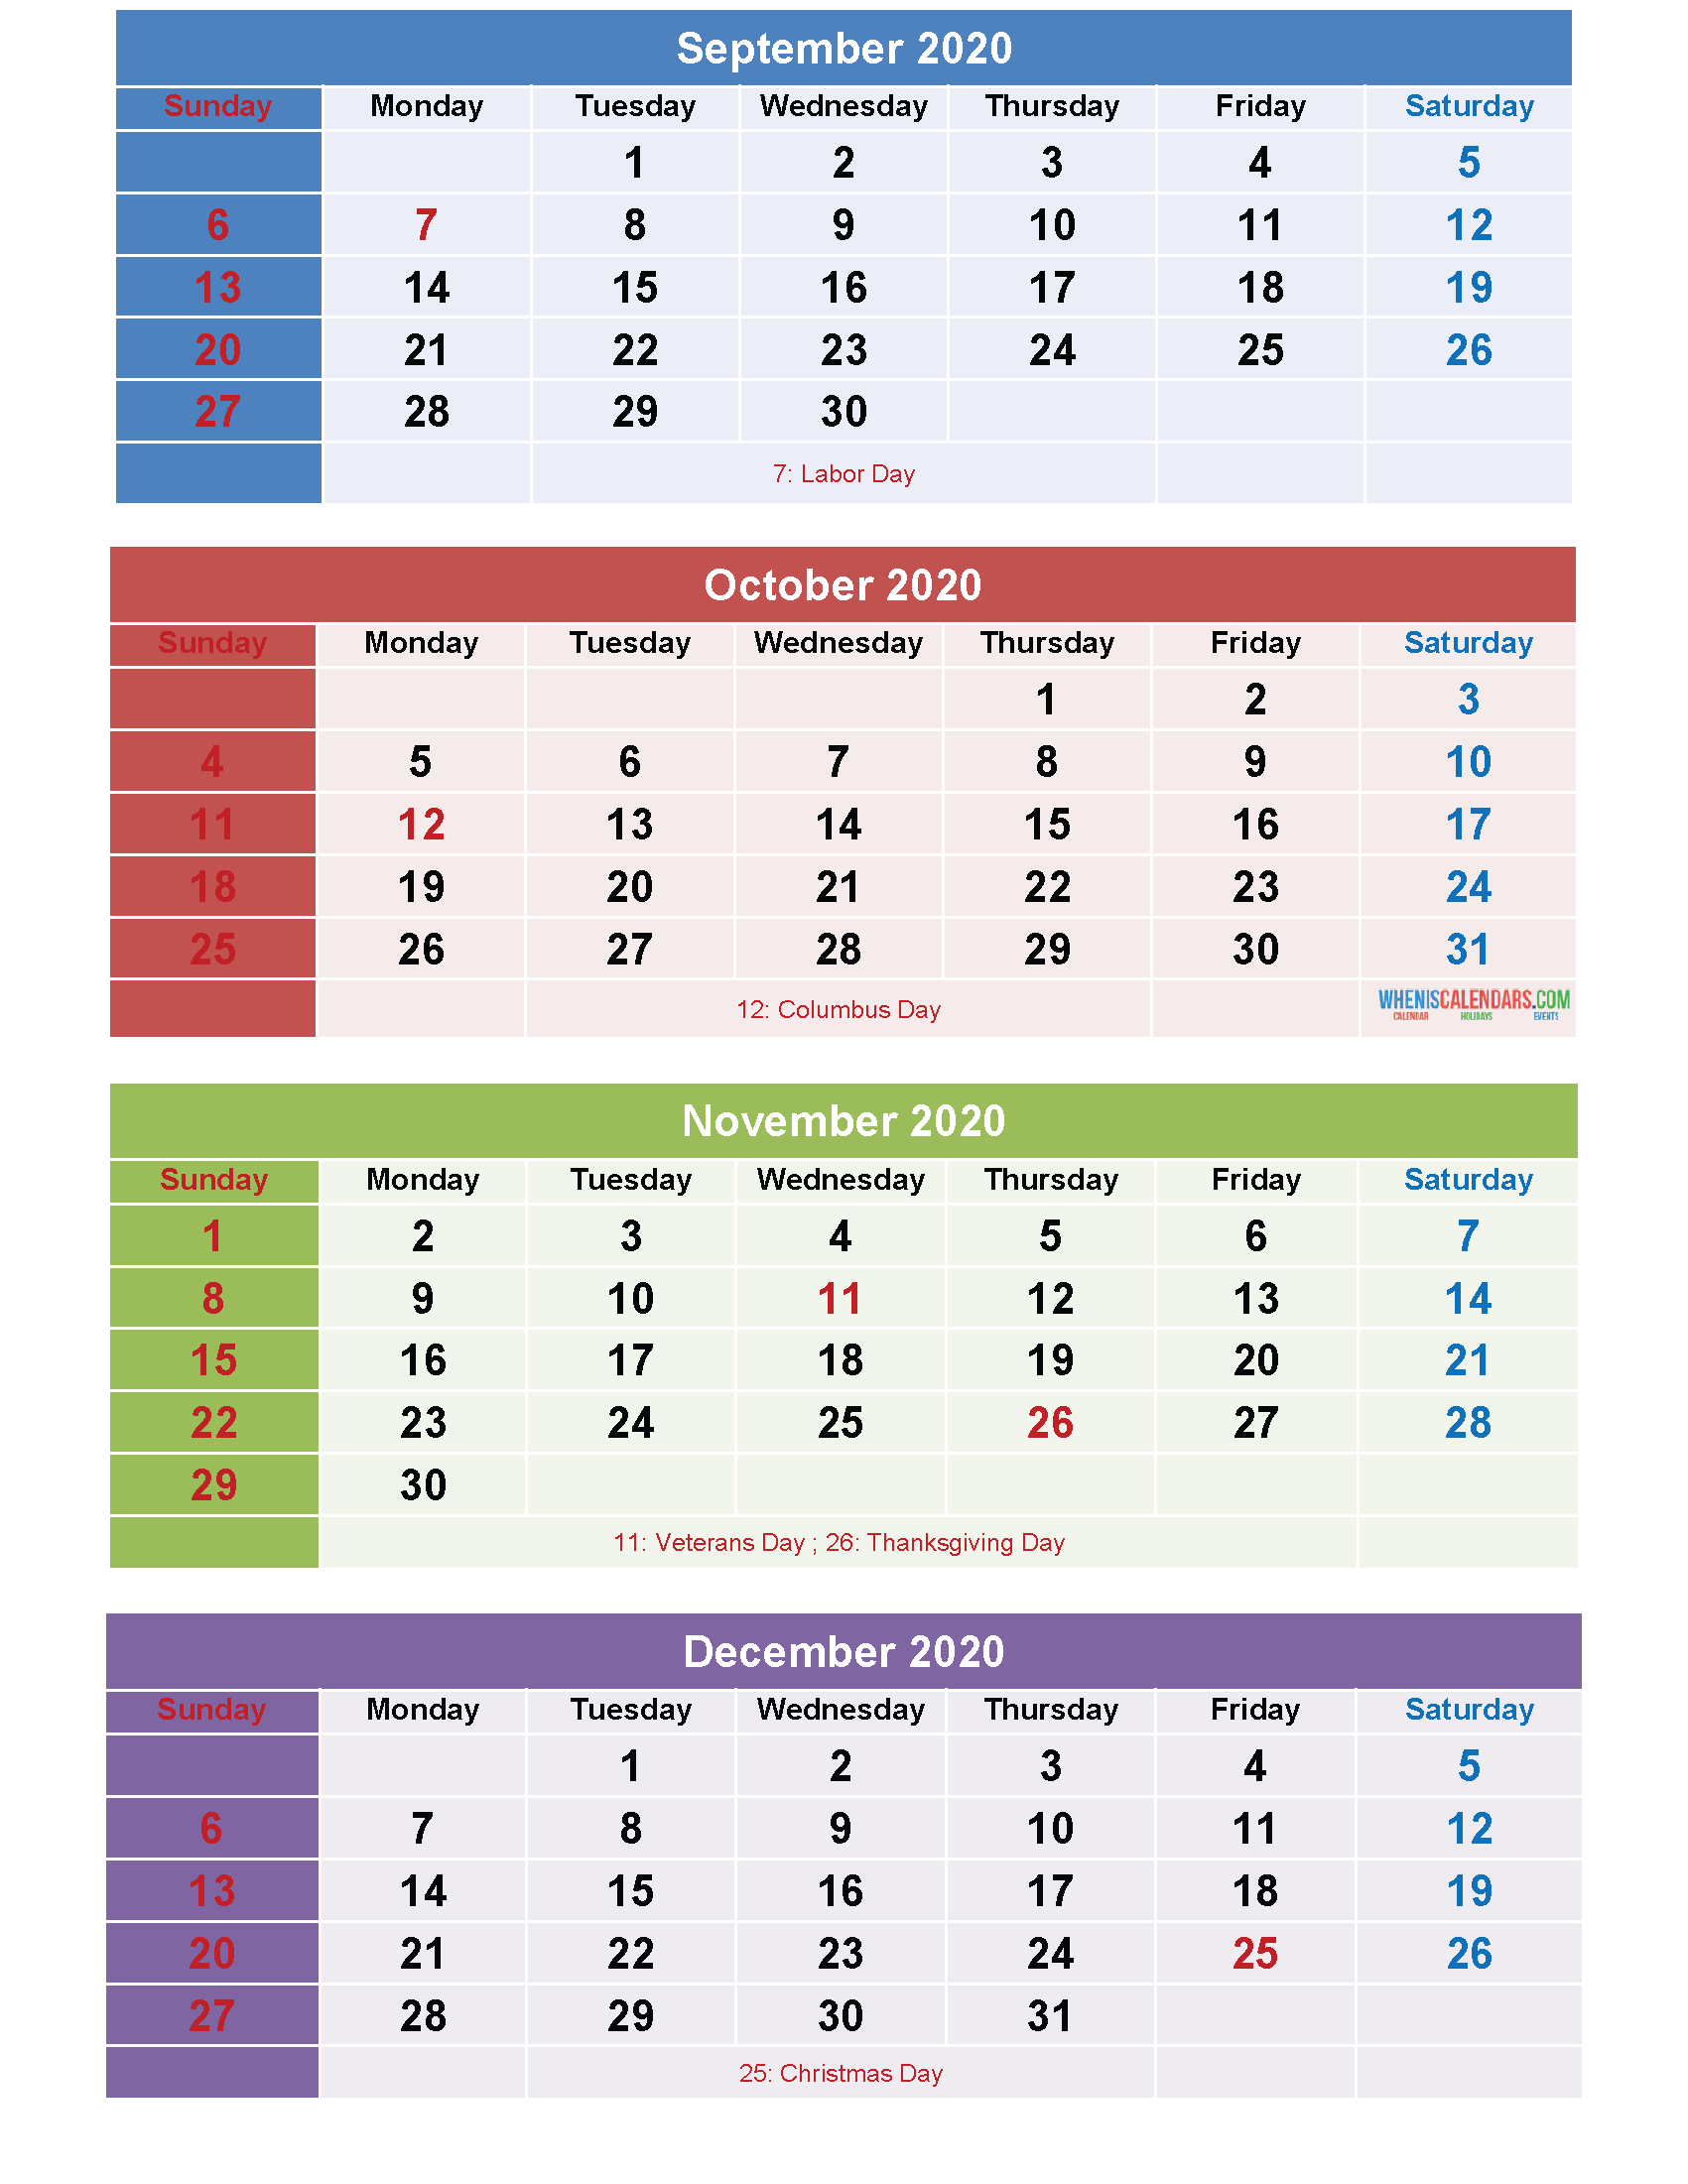 September October November December 2020 Calendar Printable regarding October To December 2020 Calendar